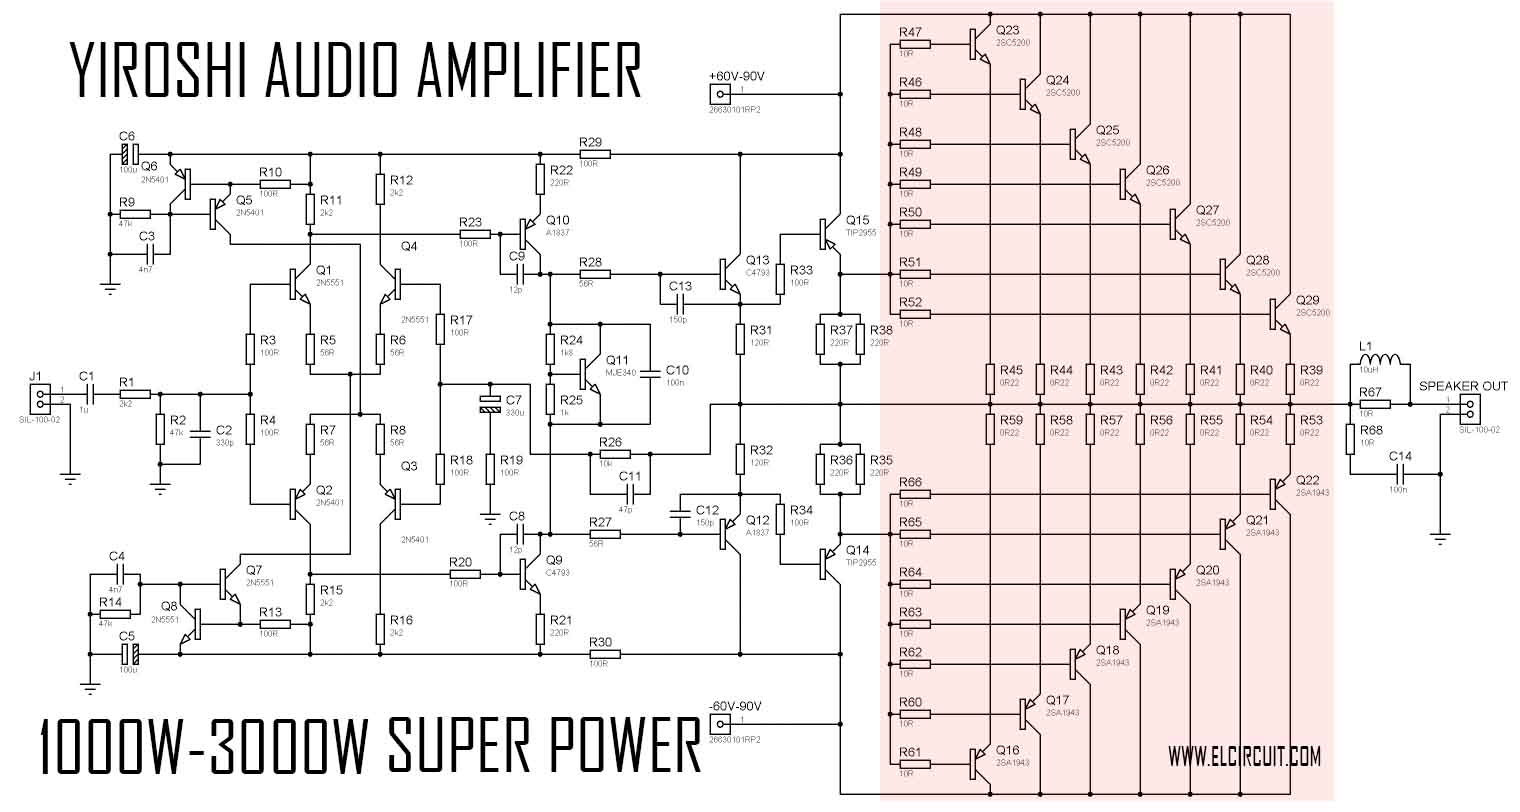 Yiroshi amplifier 1000W 1kW output power circuit diagram